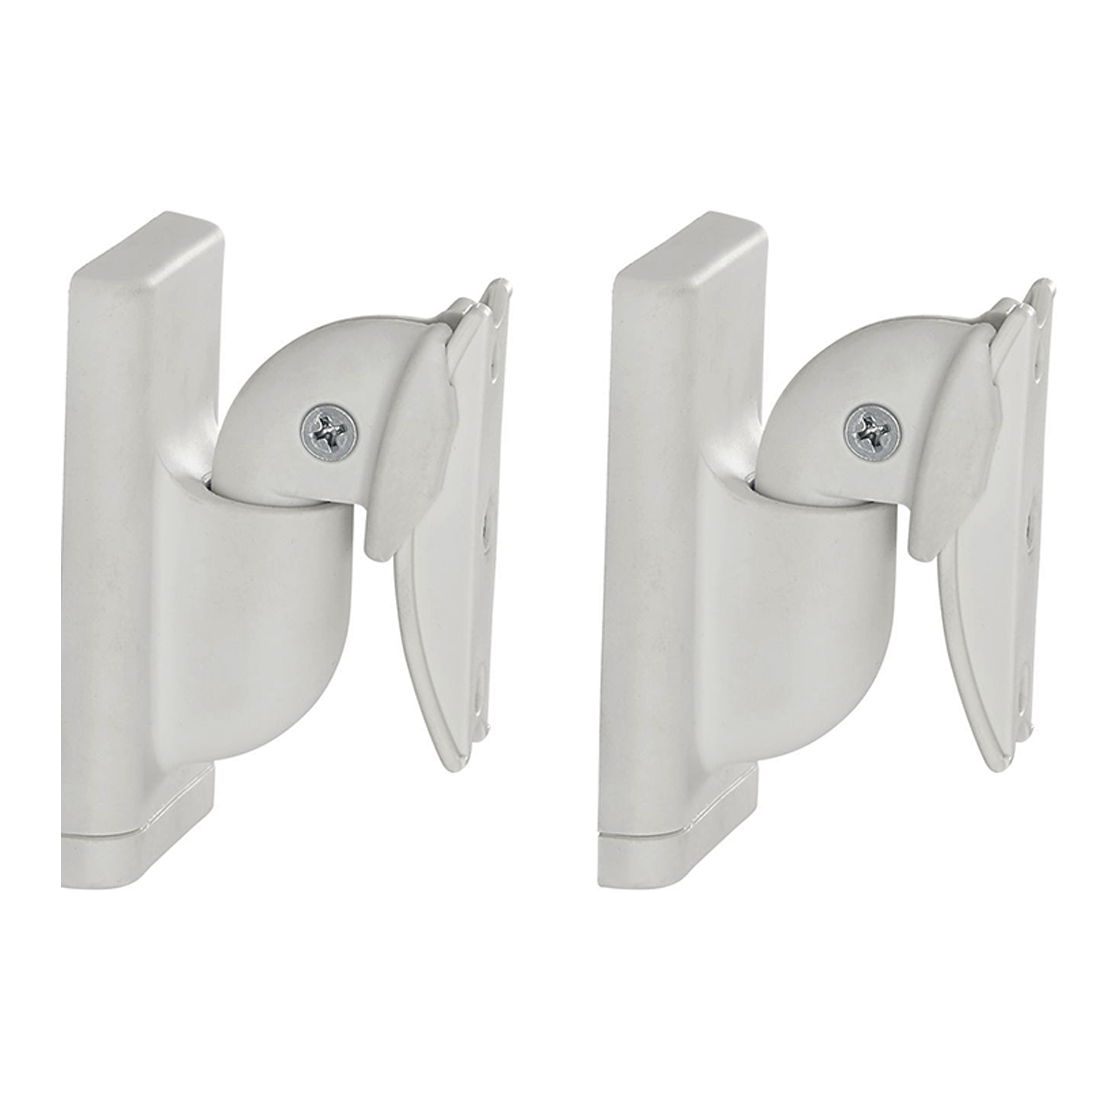 Sanus Wswm1 W2 Tilt And Swivel Wall Mount For Sonos Play 1